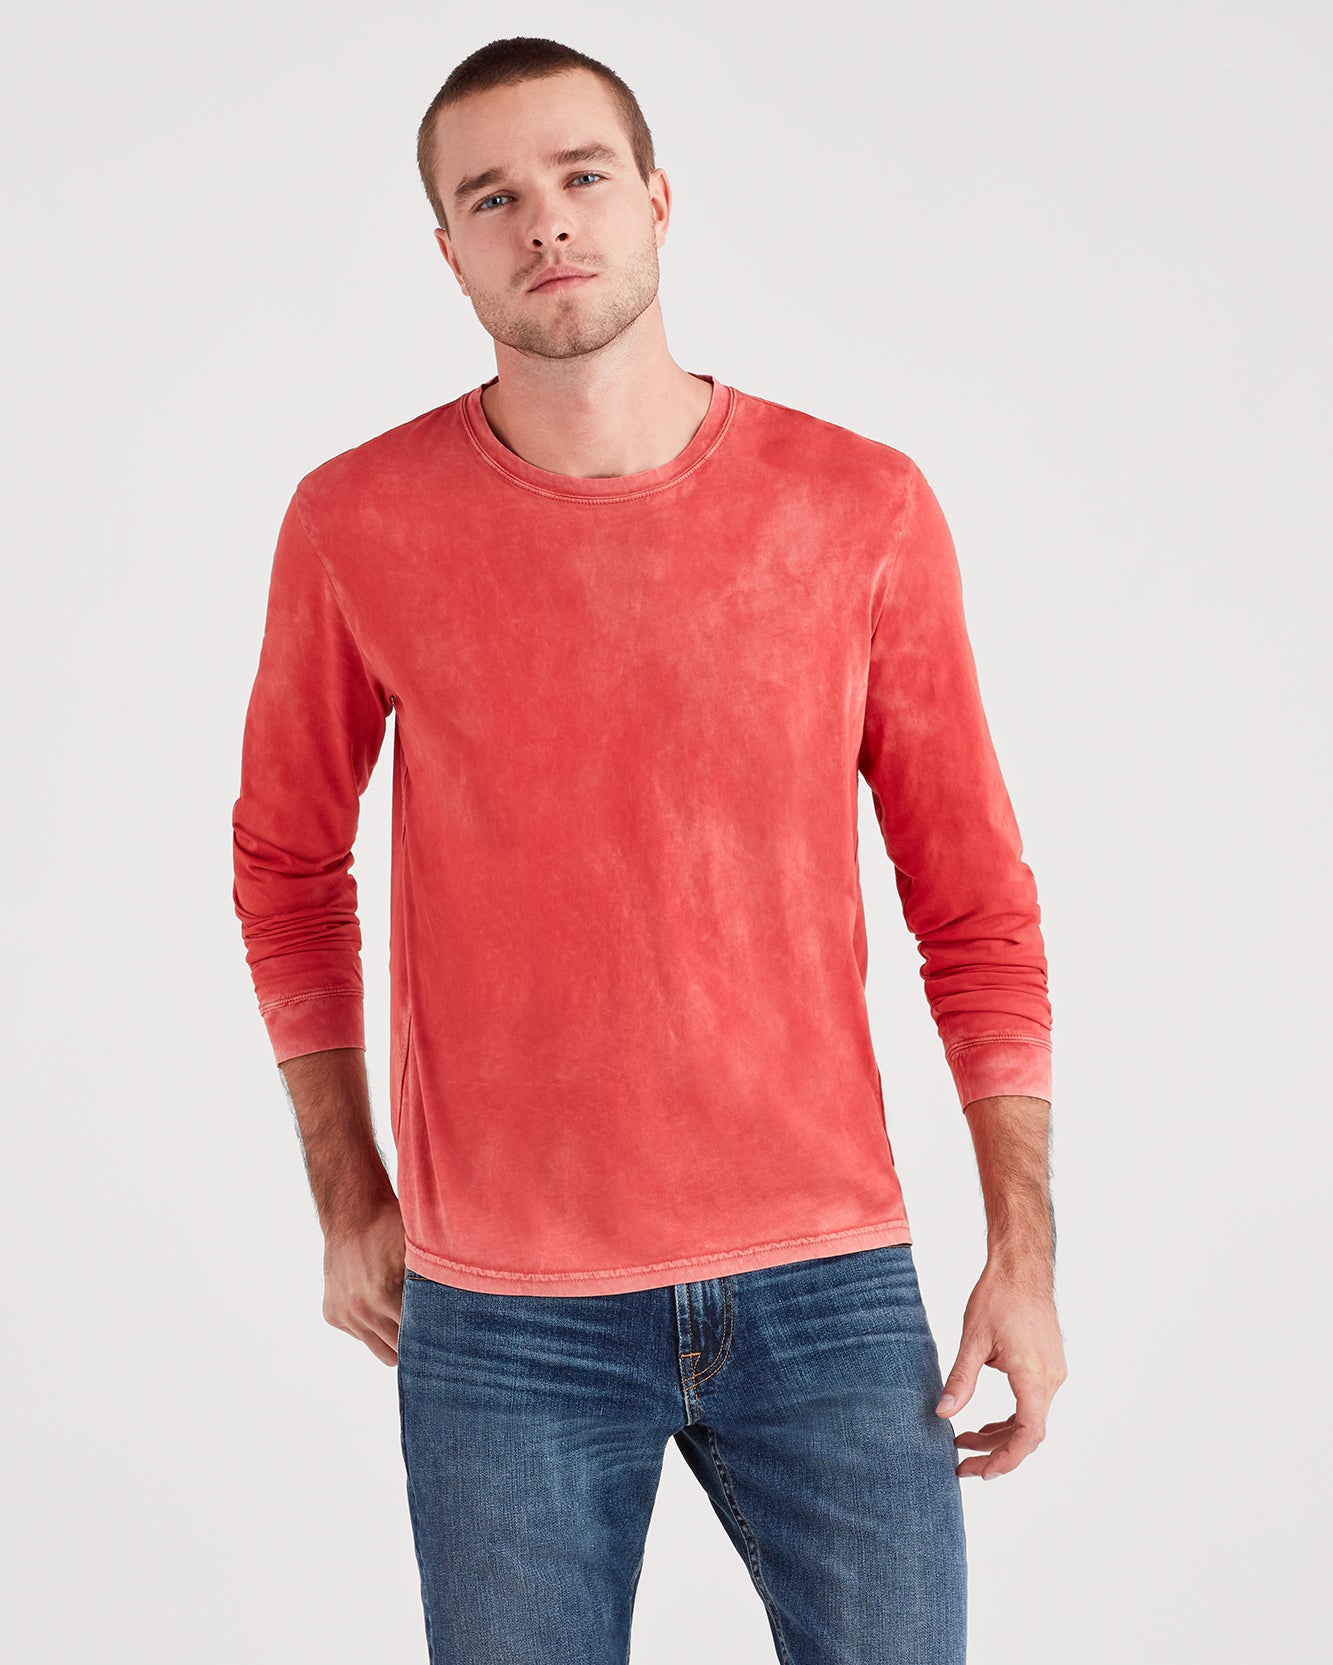 Image of Long Sleeve Washed Tee in Red Flame